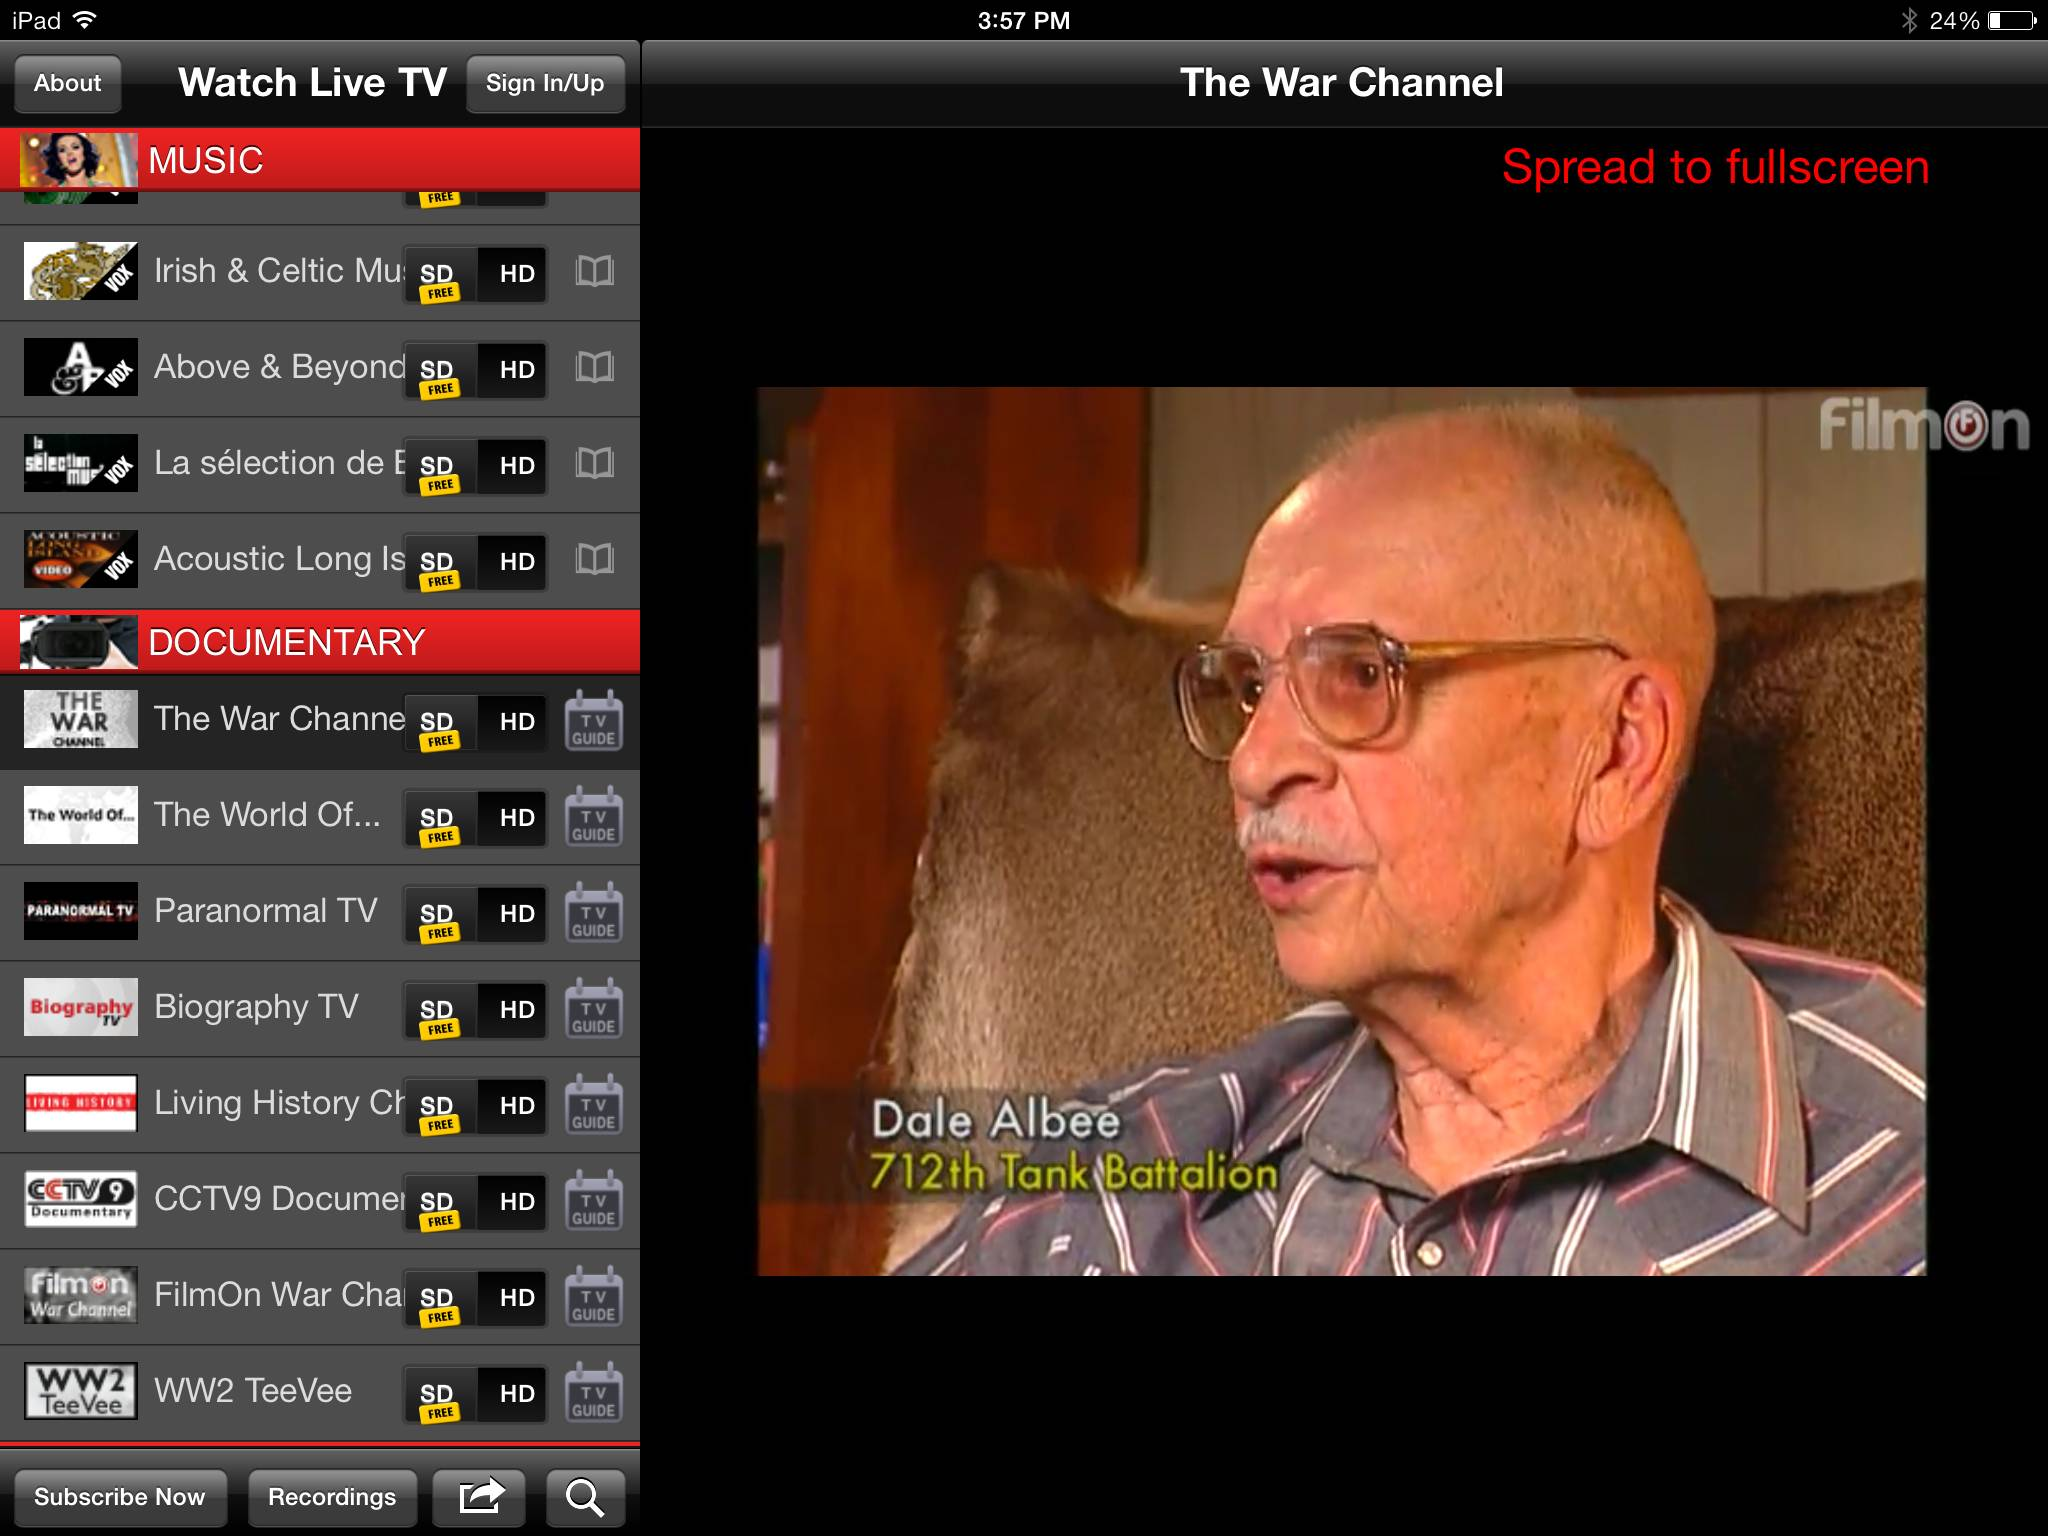 In this screenshot made Wednesday, June 25, 2014 shows The War Channel as viewed on FilmOn's ipad app. FilmOn offers over-the-air TV channels through a website and mobile apps.